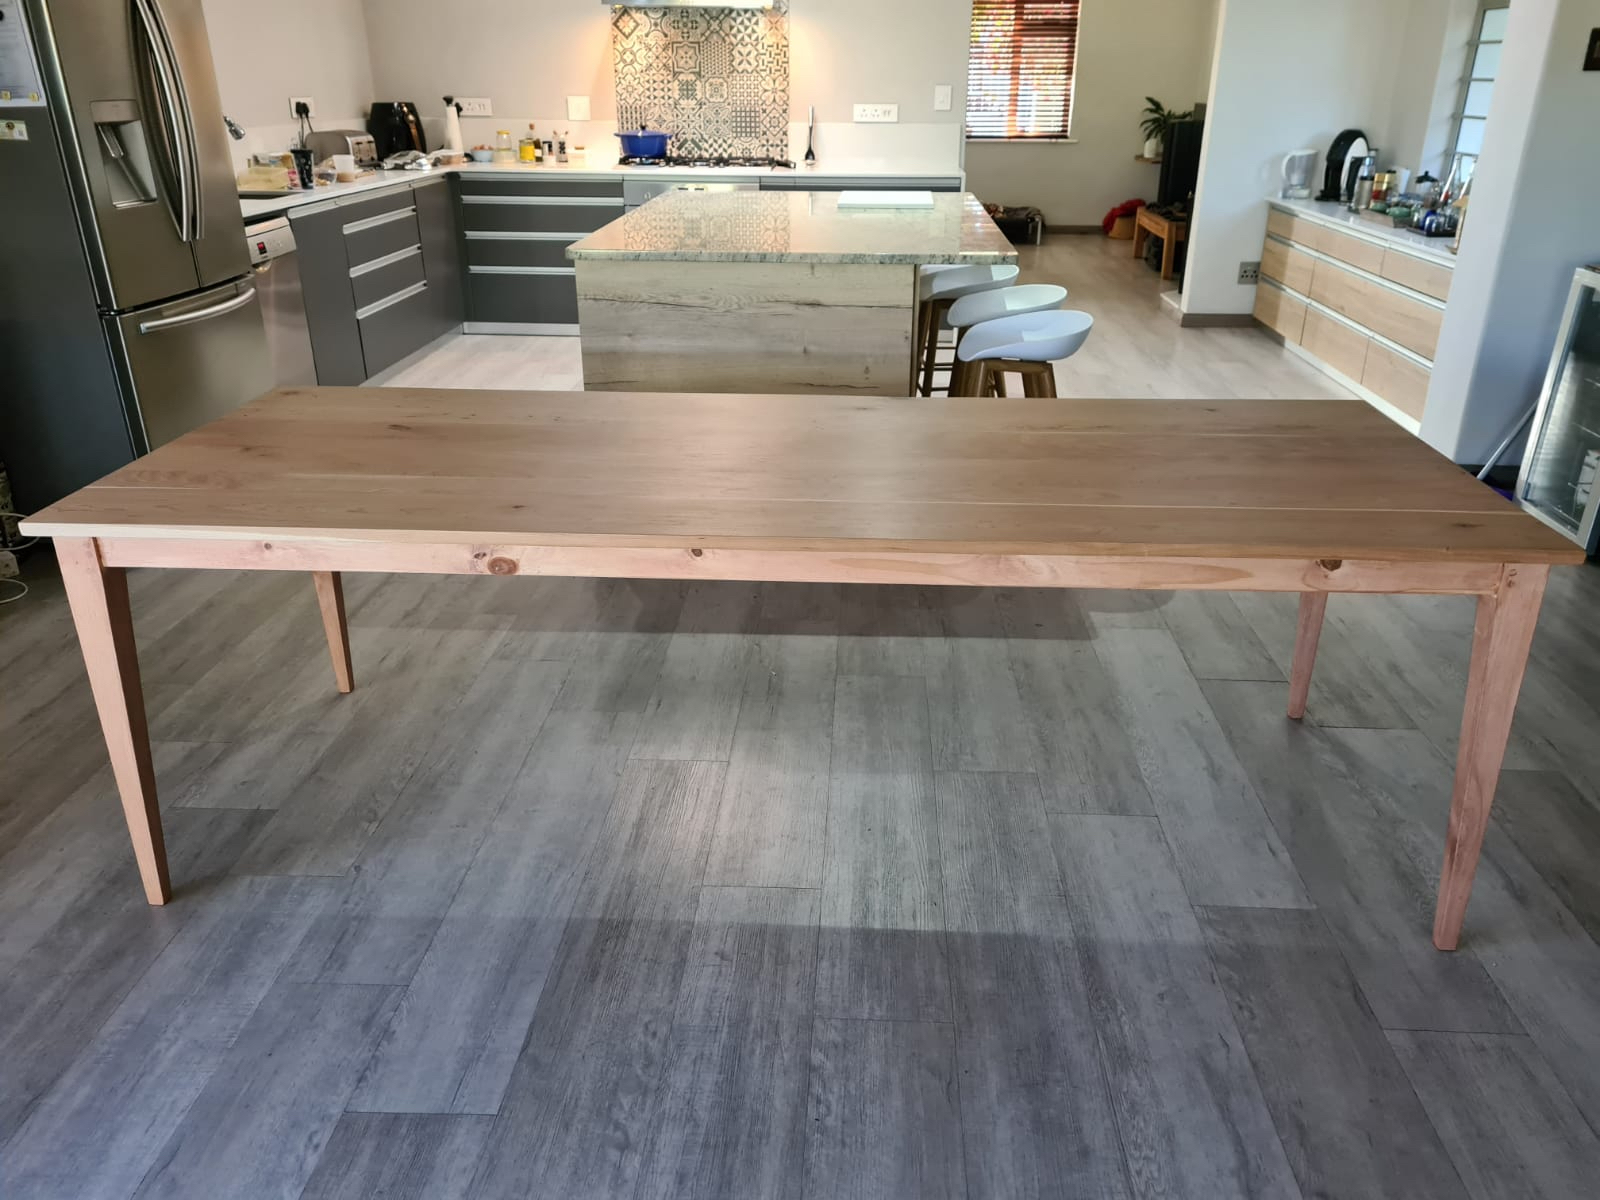 Dining room table 10 seater